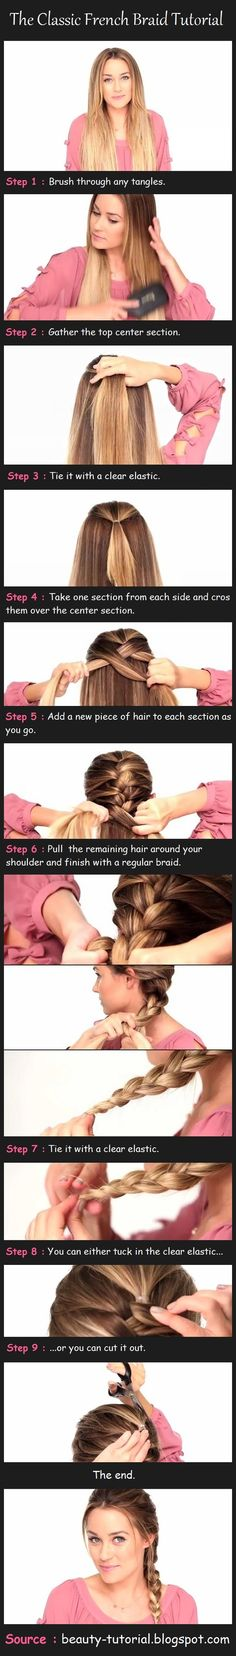 The Classic French Braid Tutorial: Beauty Tutorials